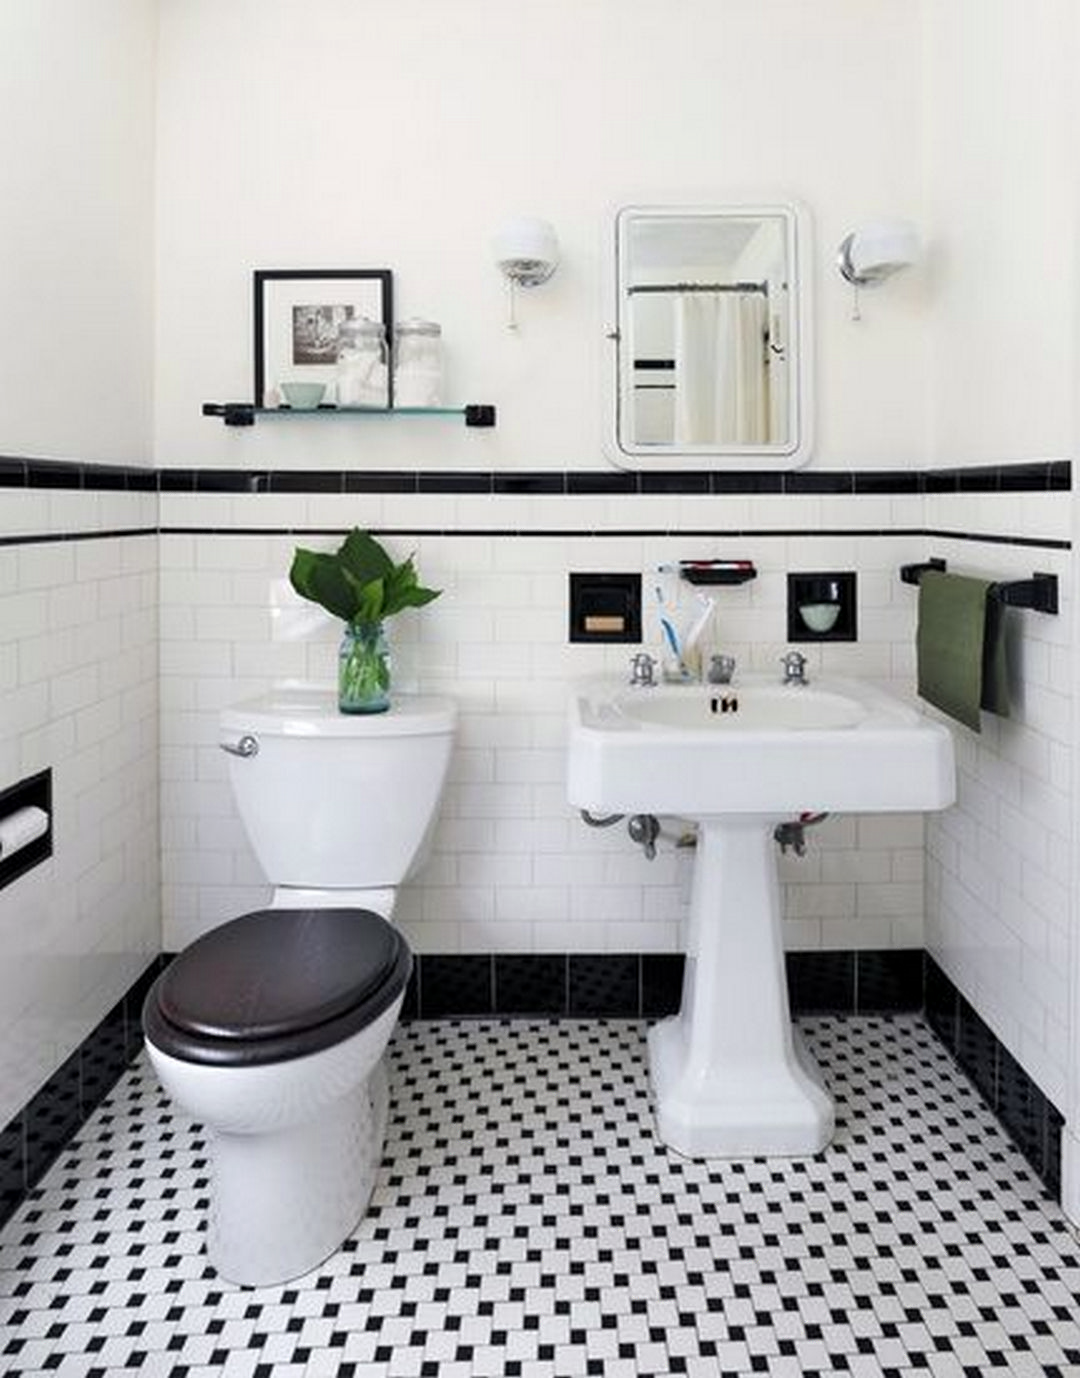 The House Black White Elegant Interior Of A Big House With Useful Loft Black And White Bathroom Floor Black And White Tiles Bathroom Vintage Bathroom Tile